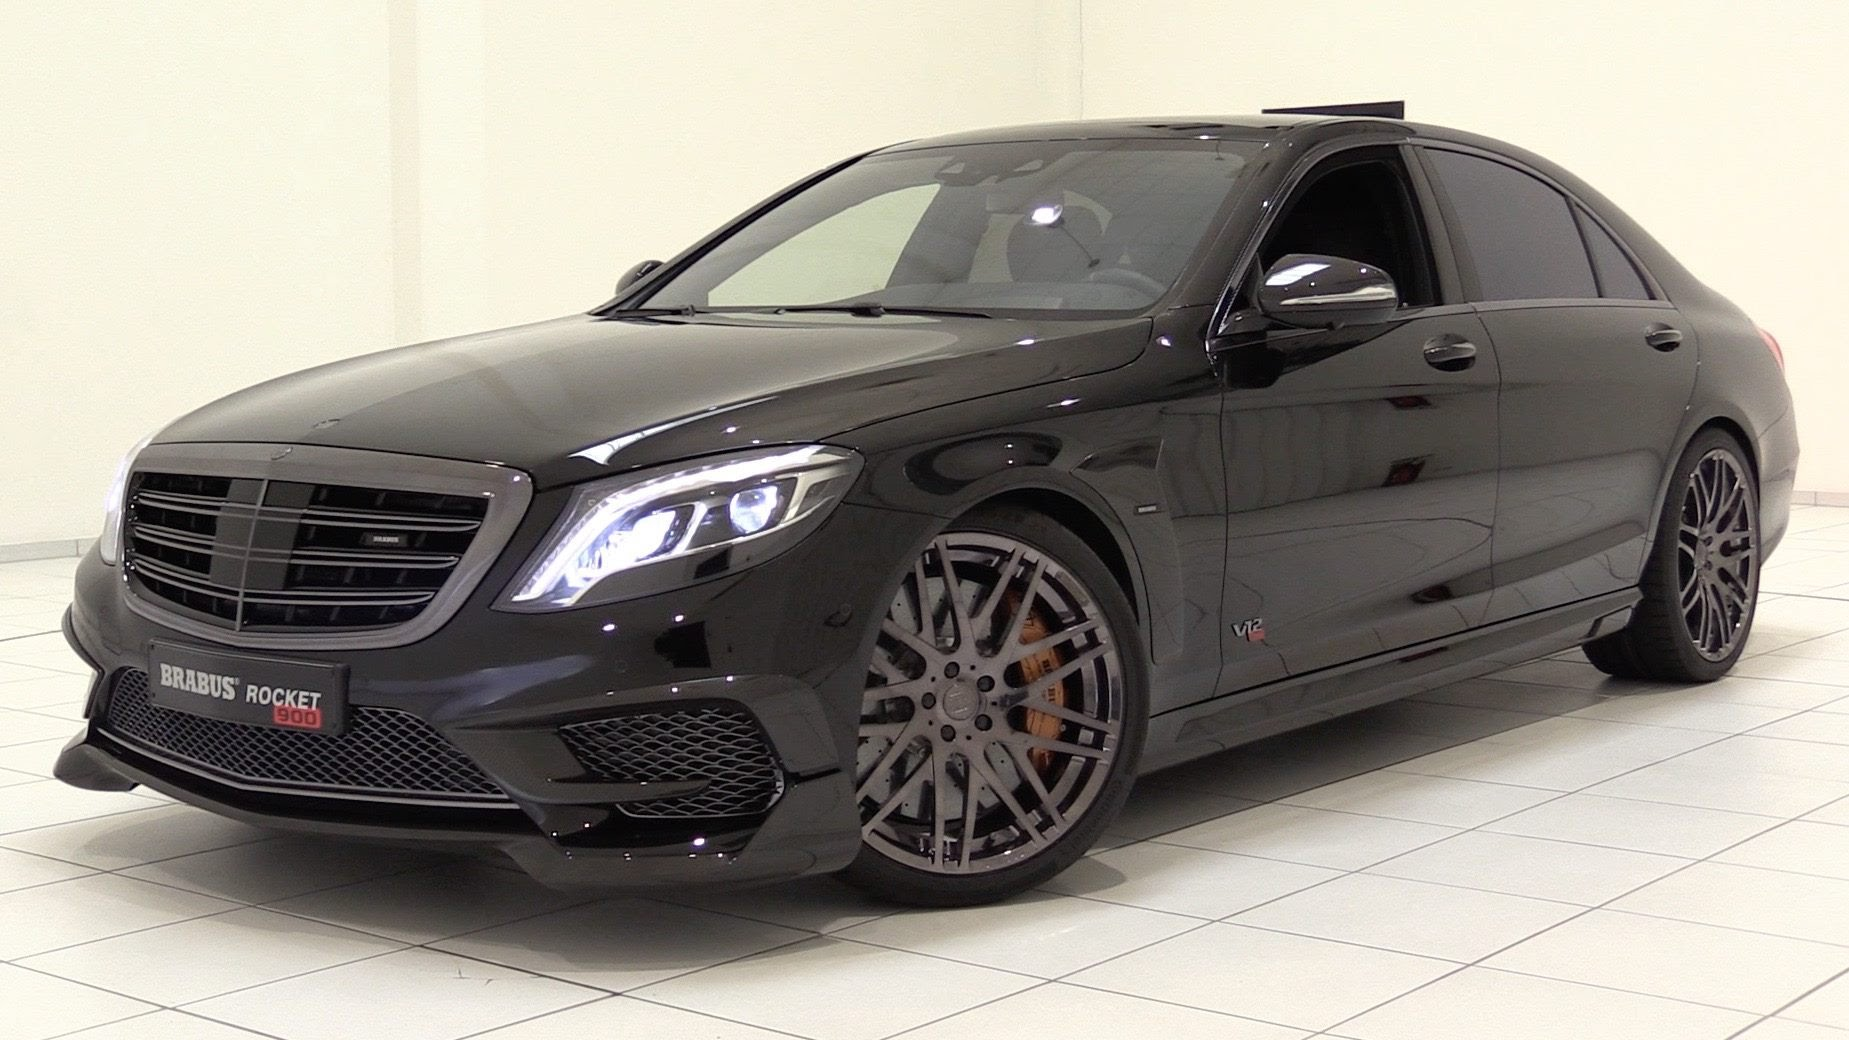 Brabus rocket photo - 7